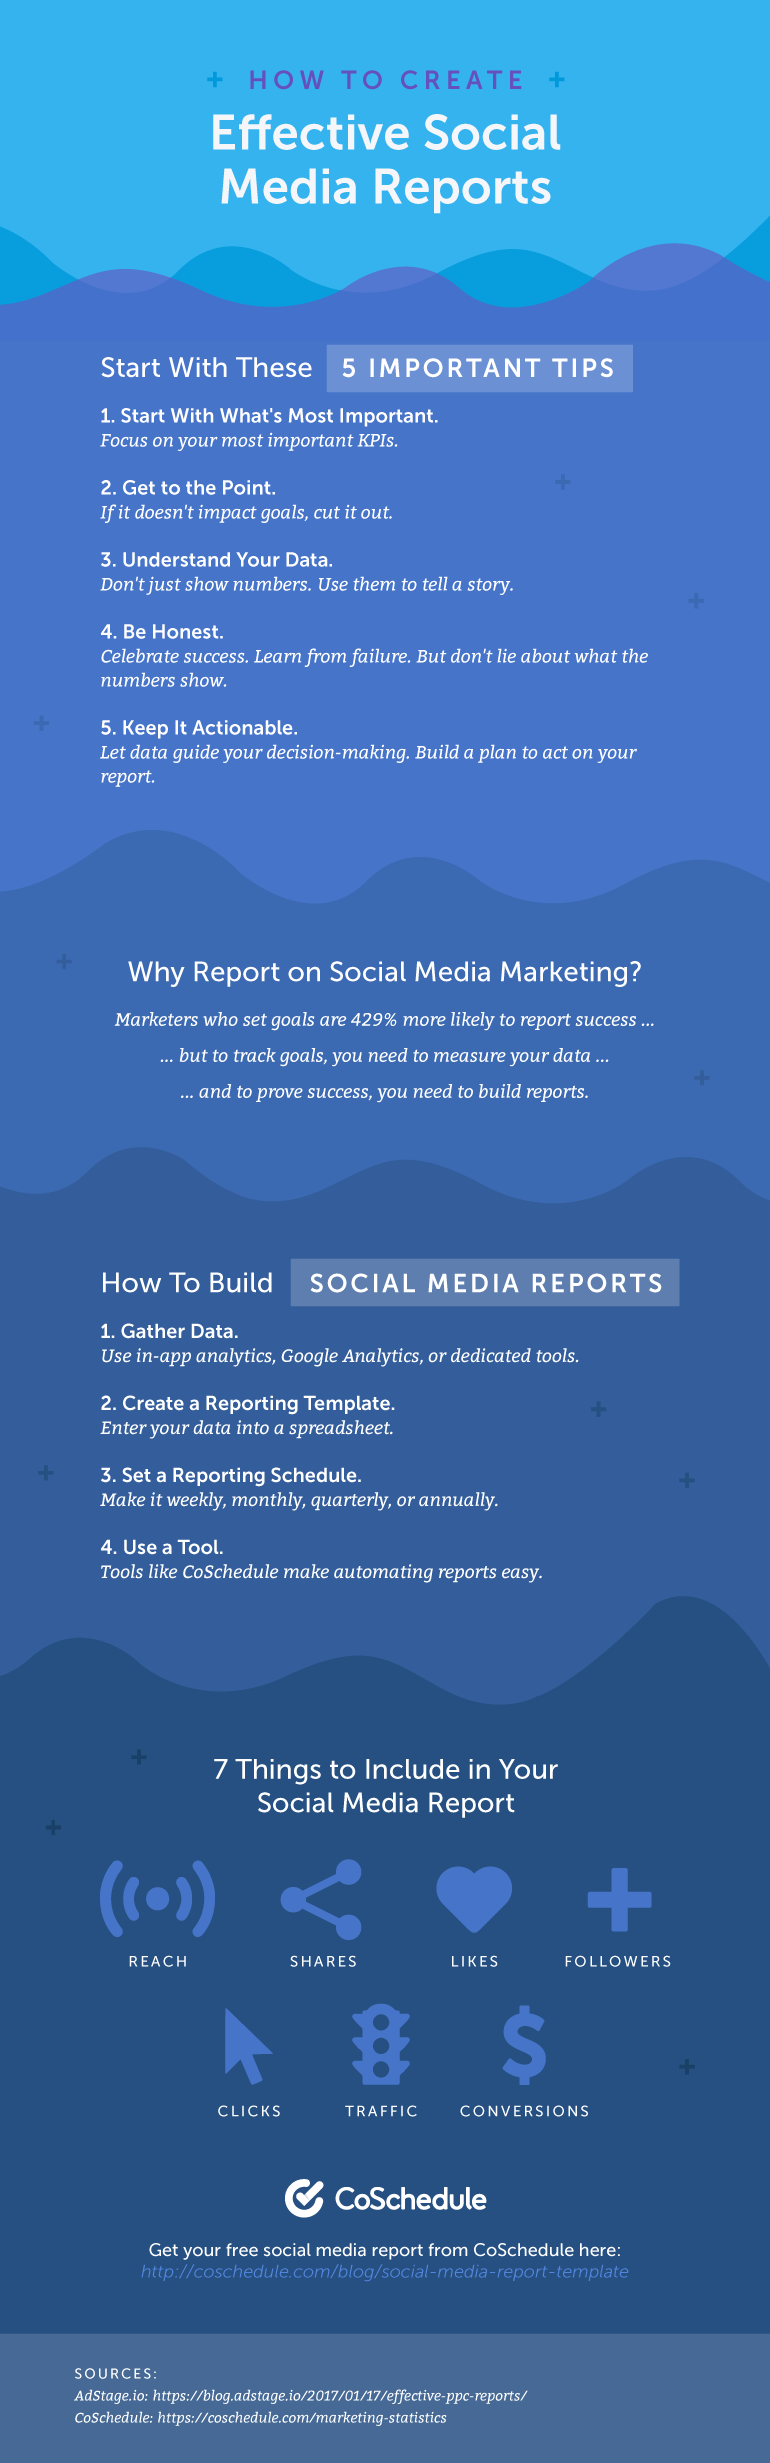 How to Create Effective Social Media Reports